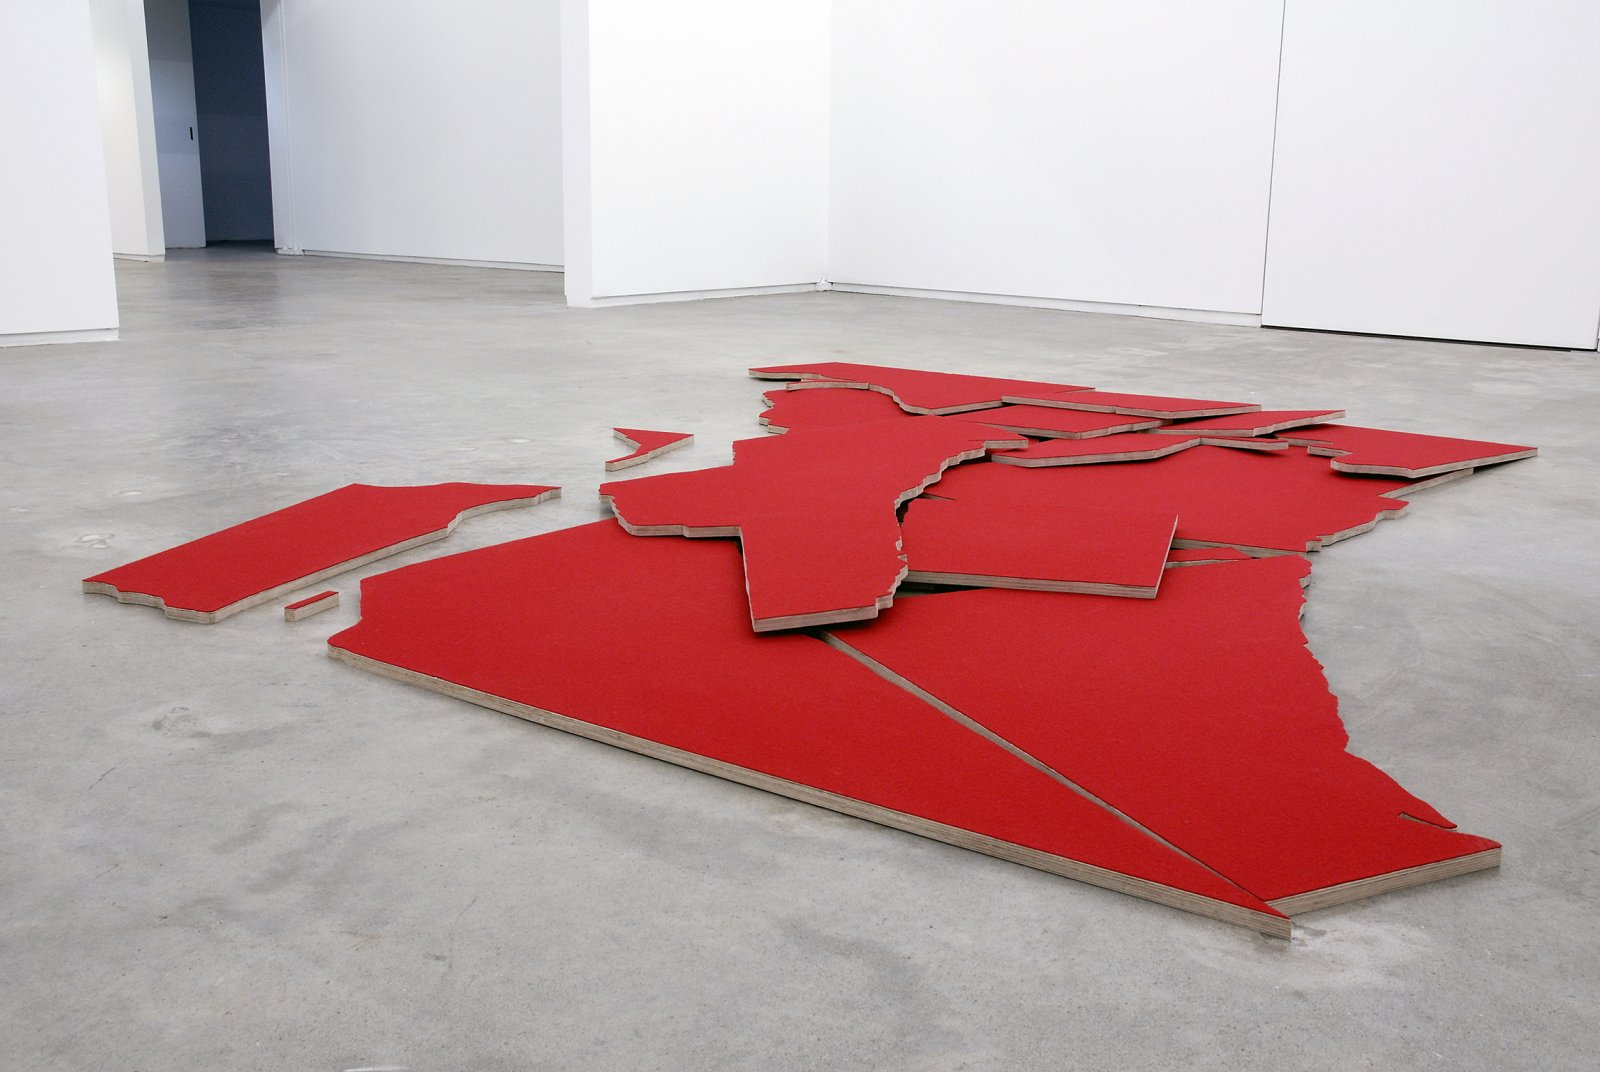 Brian Jungen, Greater Vancouver, 2007, 18 baltic plywood cutouts, wool fabric, 126 x 132 x 3 in. (320 x 335 x 8 cm), installation dimensions variable   by Brian Jungen